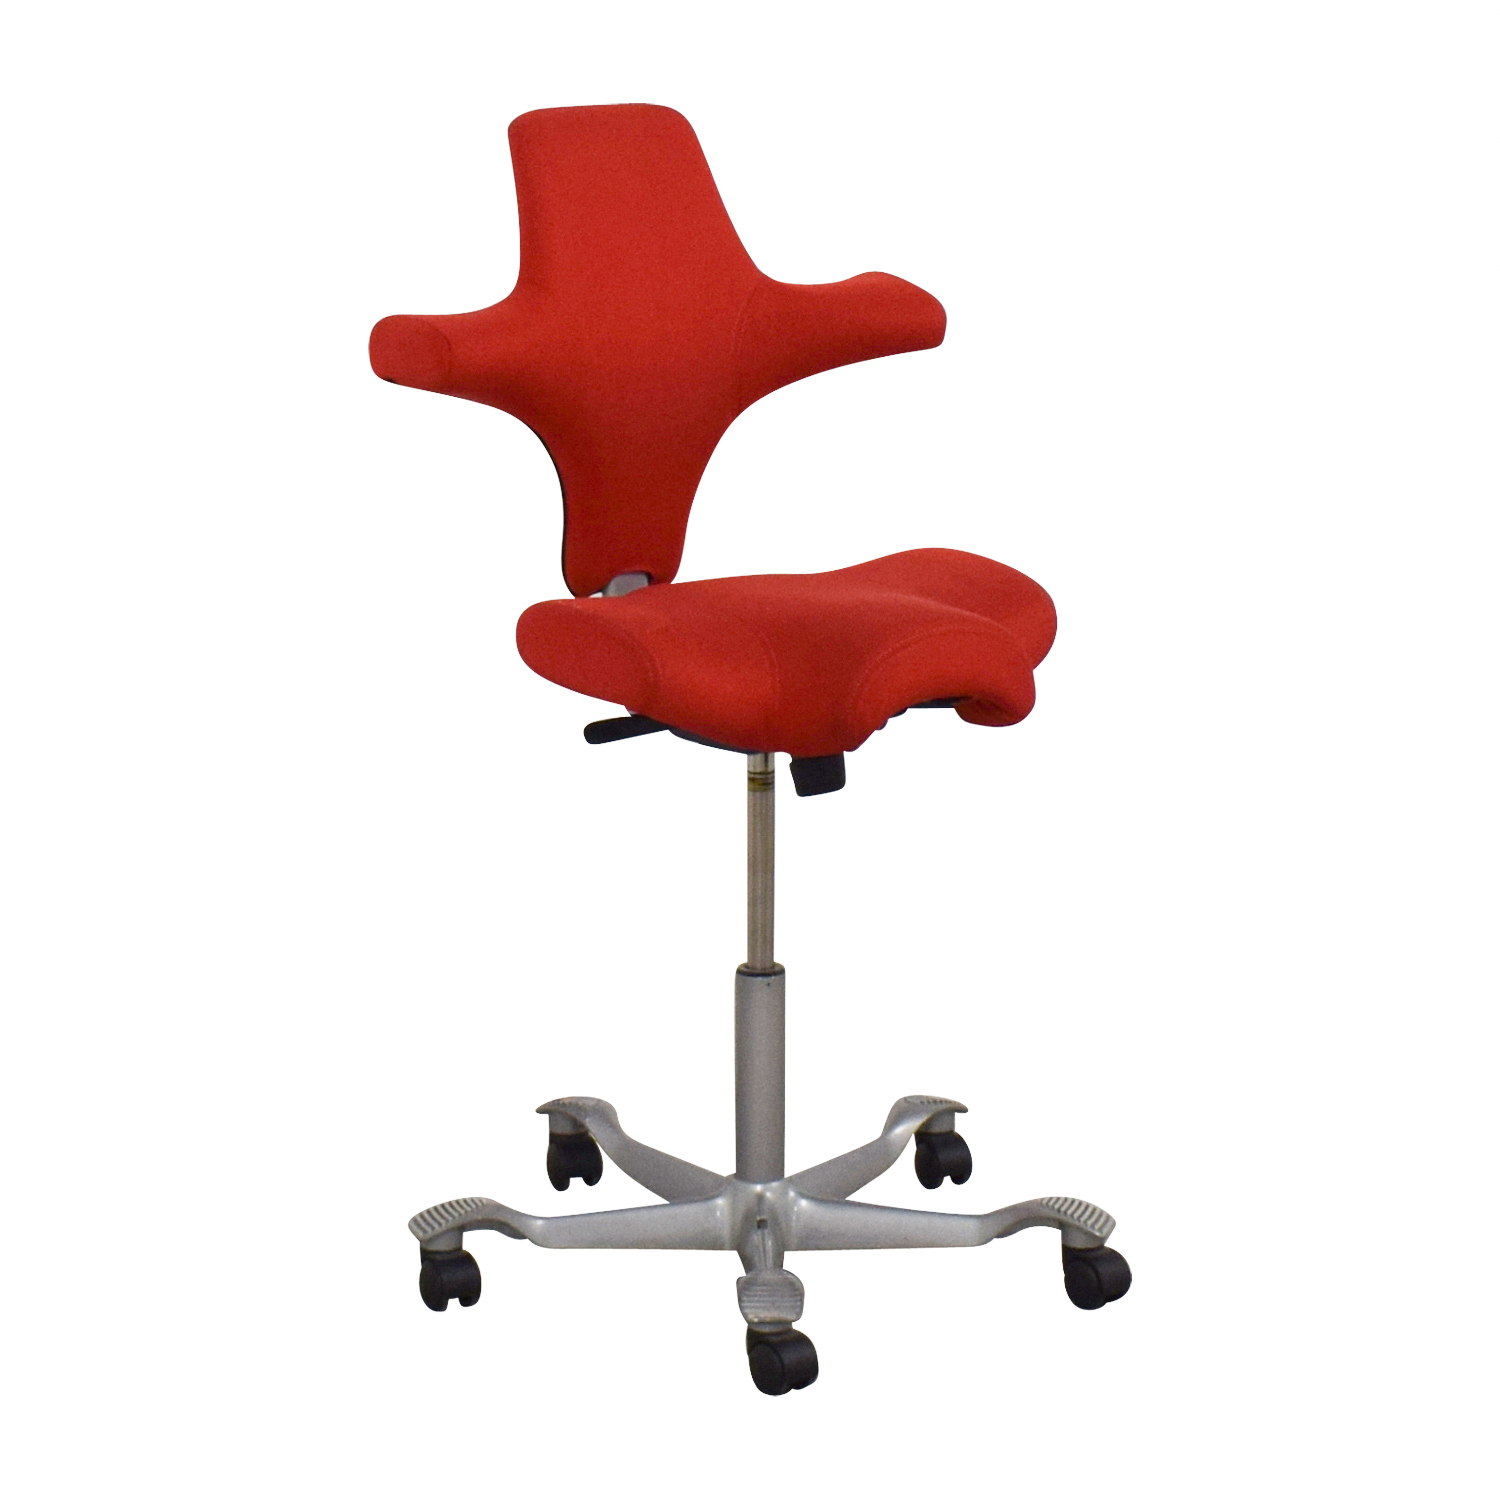 HAG Capisco Chair / Home Office Chairs